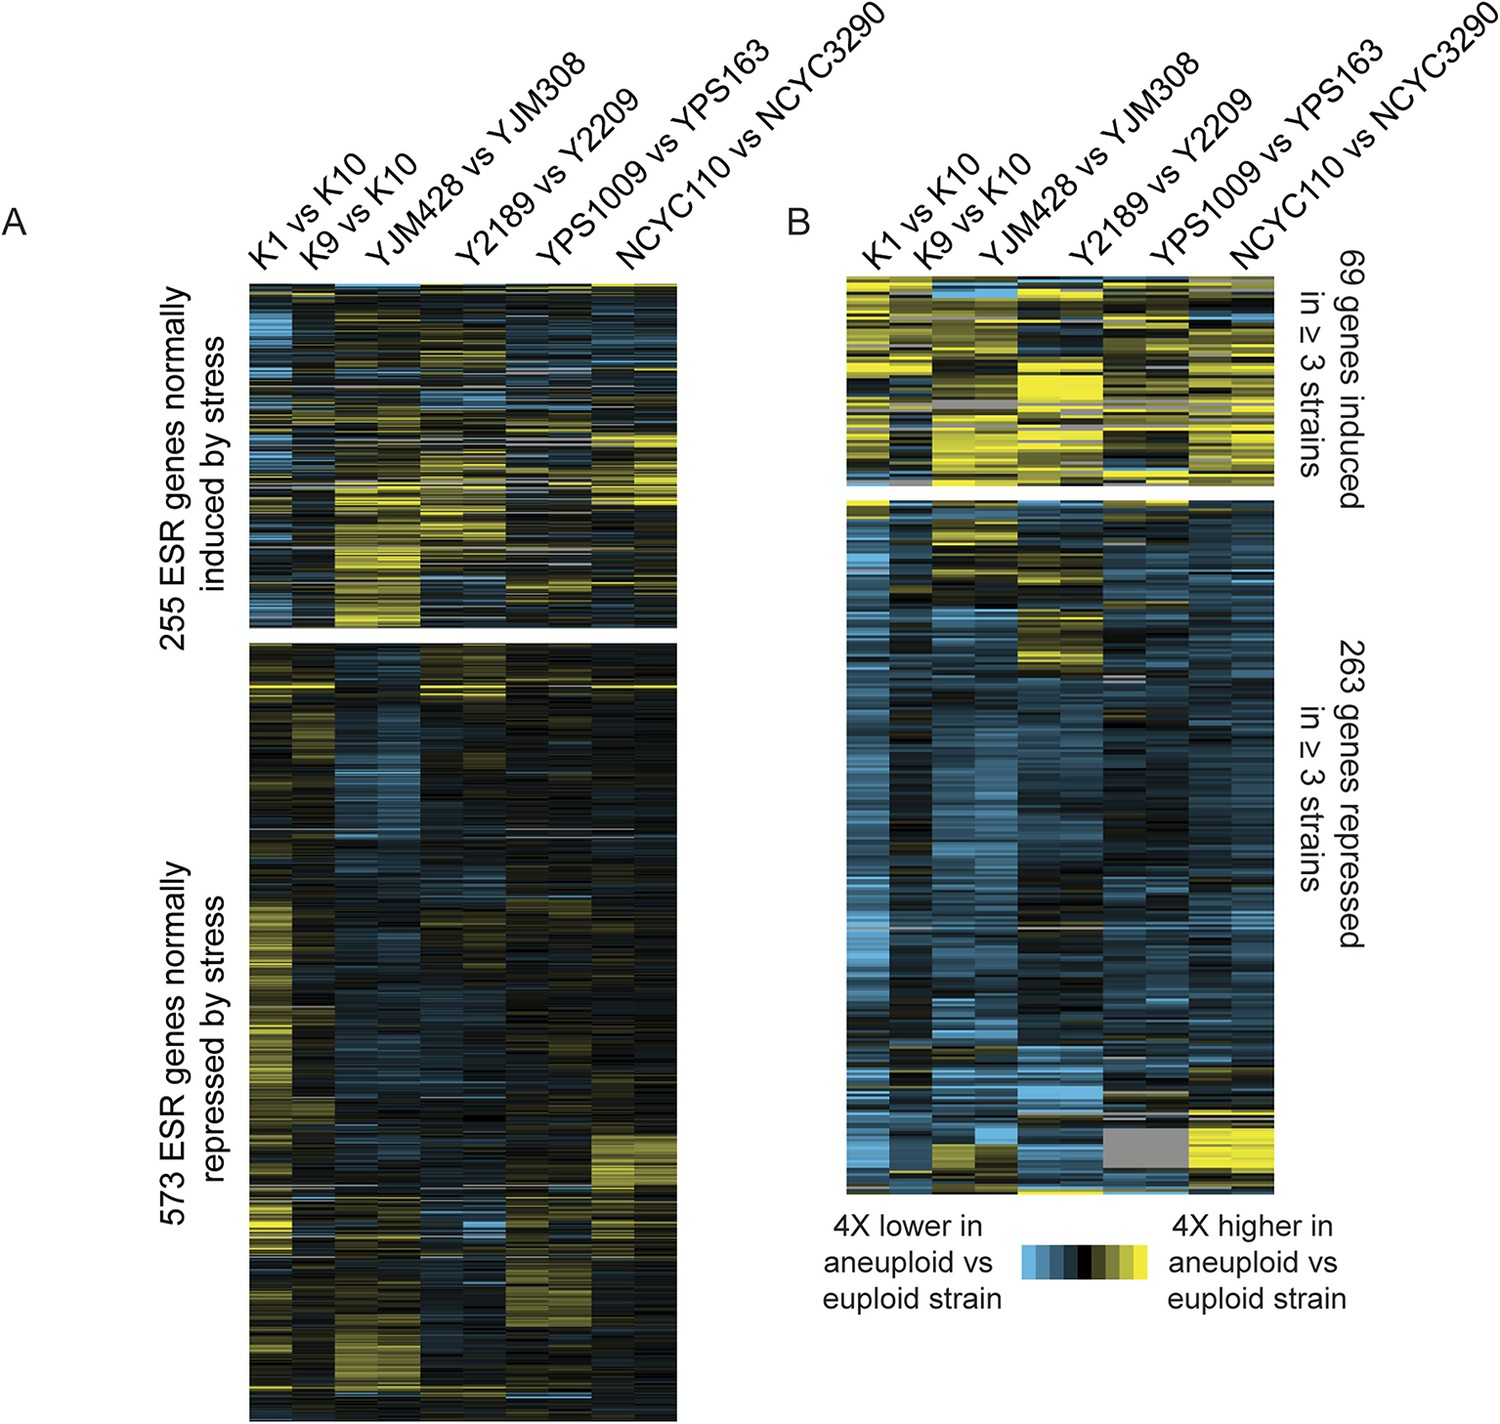 84abbed82af2d Naturally aneuploid strains show a weak common response to aneuploidy but  no activation of the ESR.